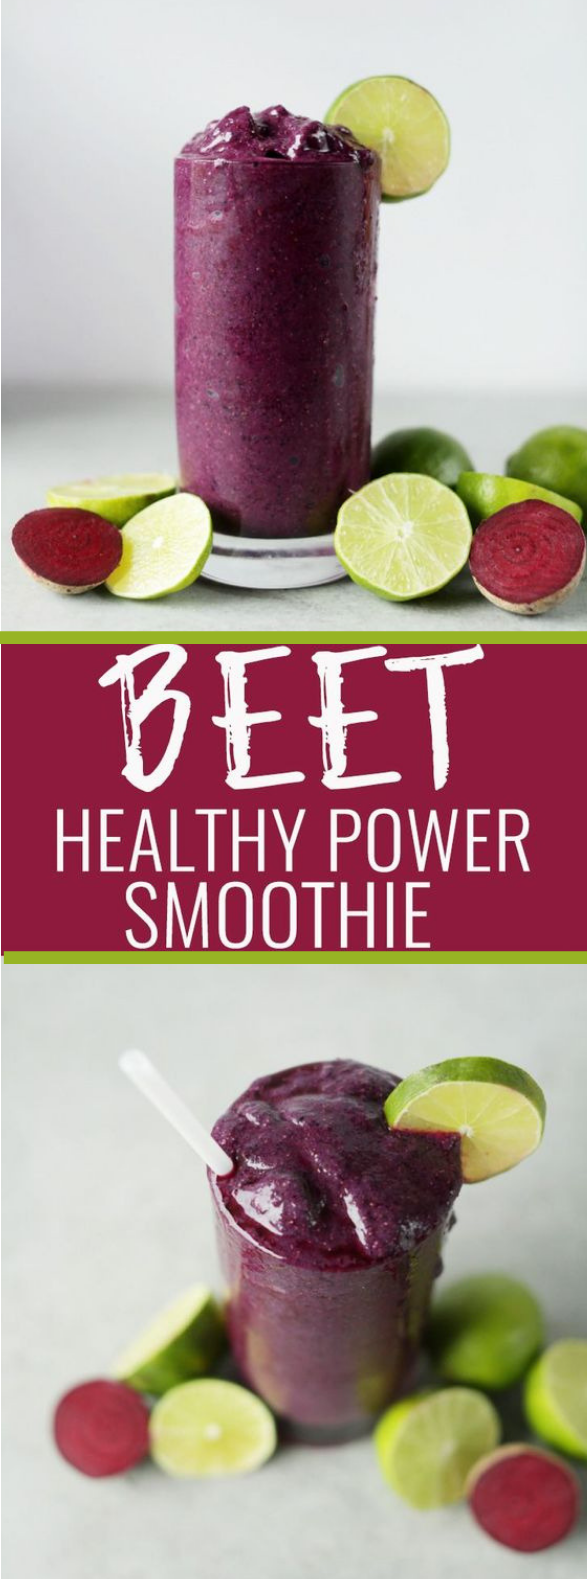 BEET THE COLD POWER SMOOTHIE #smoothie #healthydrink